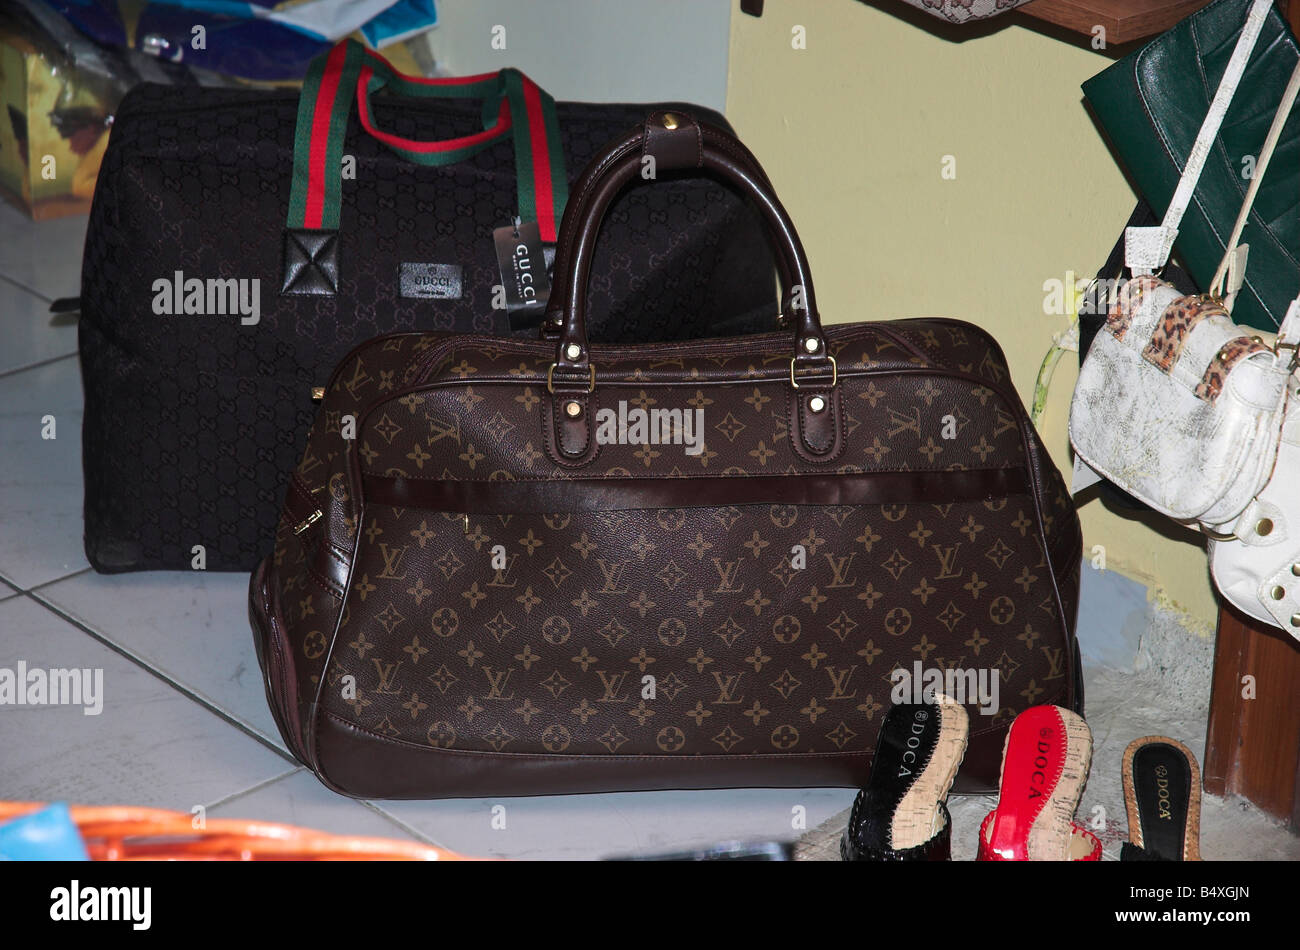 6585ce441658 Fake designer bags for sale Stock Photo  20252813 - Alamy